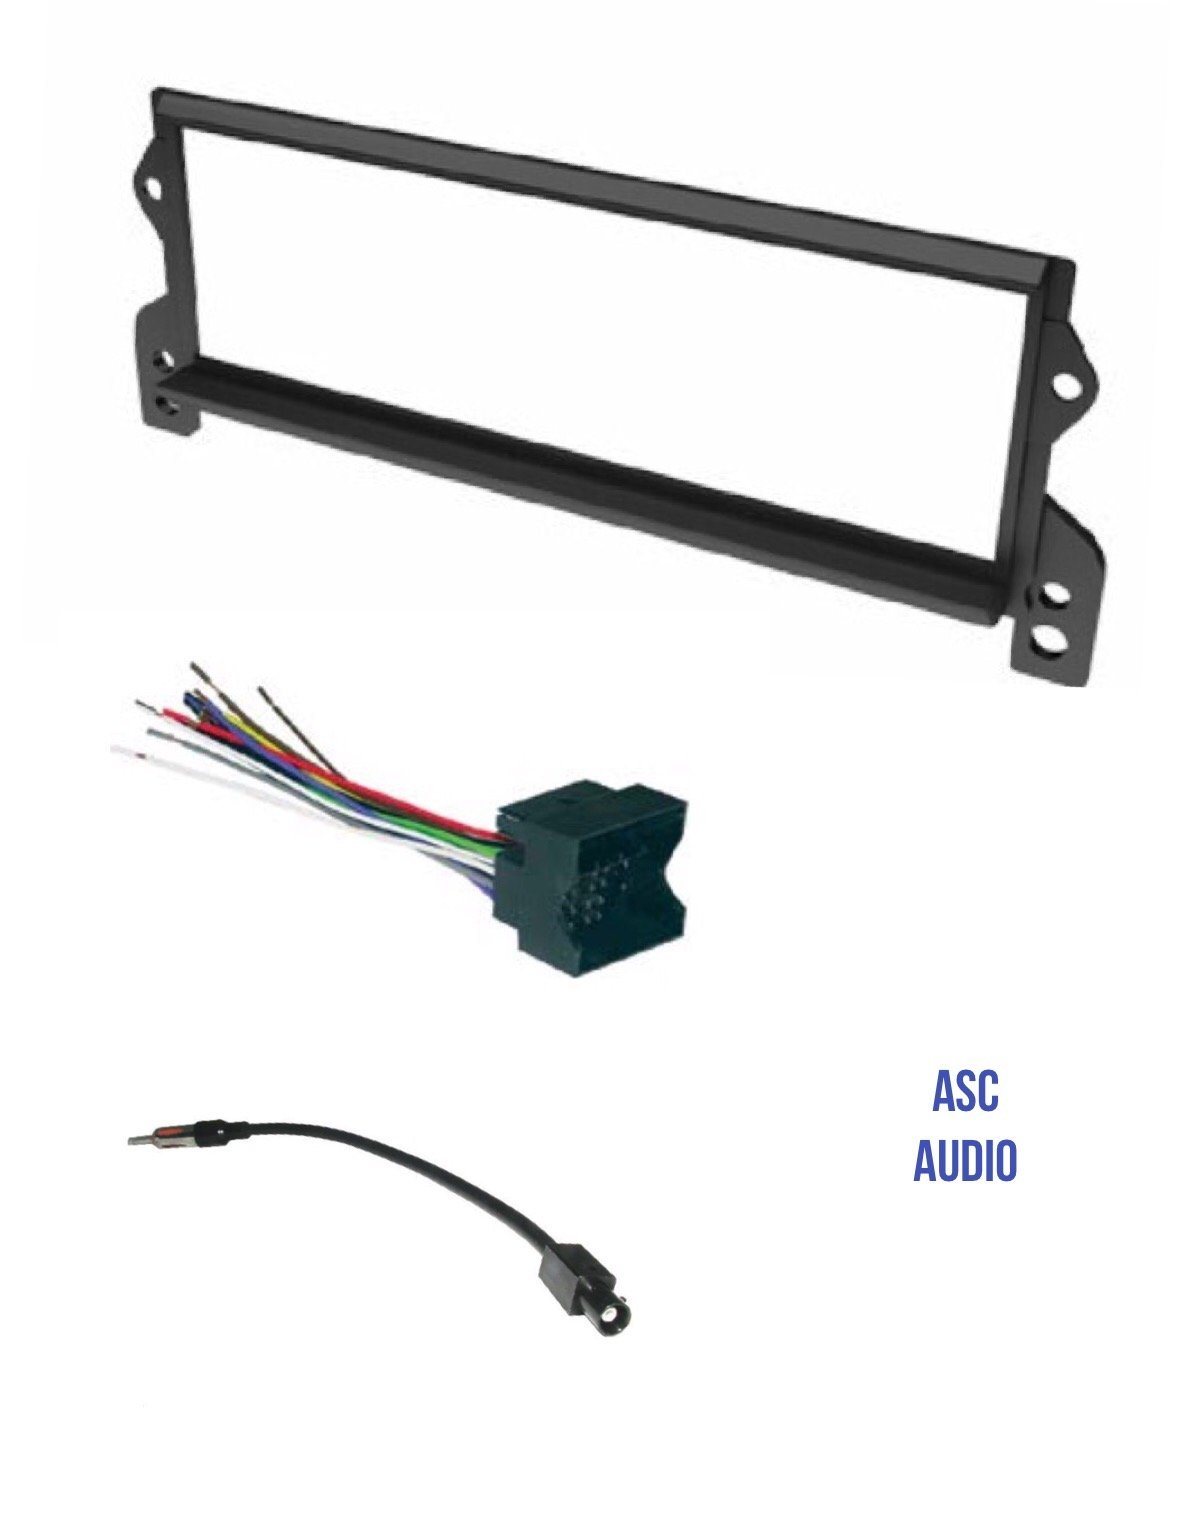 Best Rated In Car Audio Video Dash Mounting Kits Helpful Stand Art Jeep Radio Wiring Diagram Only Asc Stereo Install Kit Wire Harness And Antenna Adapter For Installing A